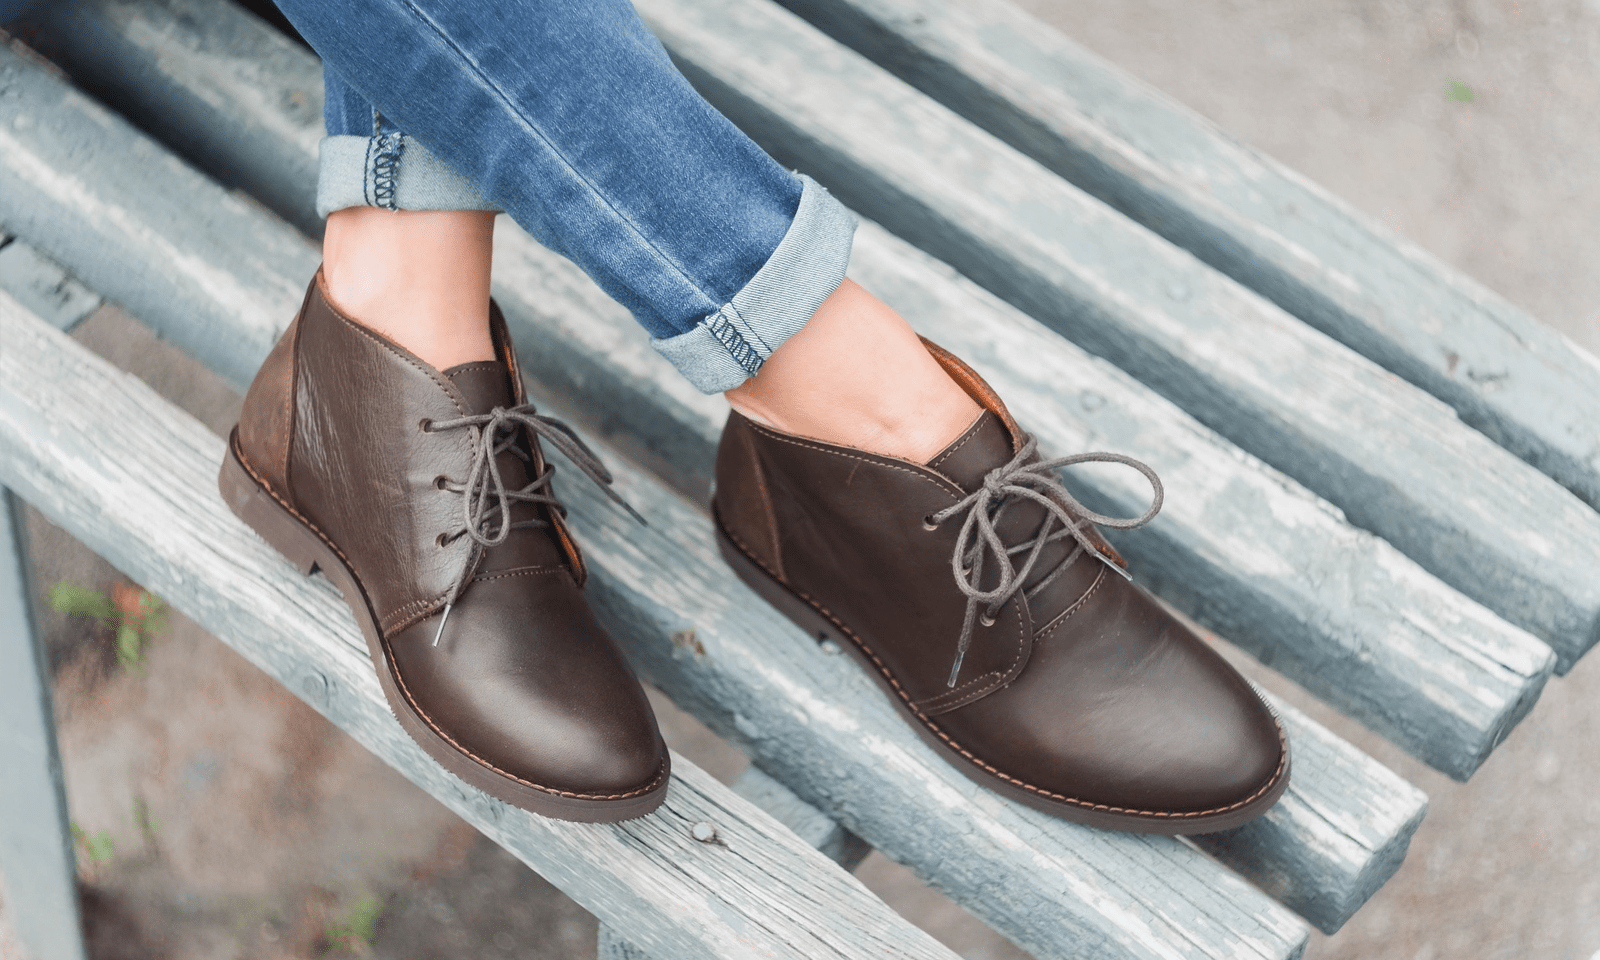 10 Best Shoes For Walking On Concrete